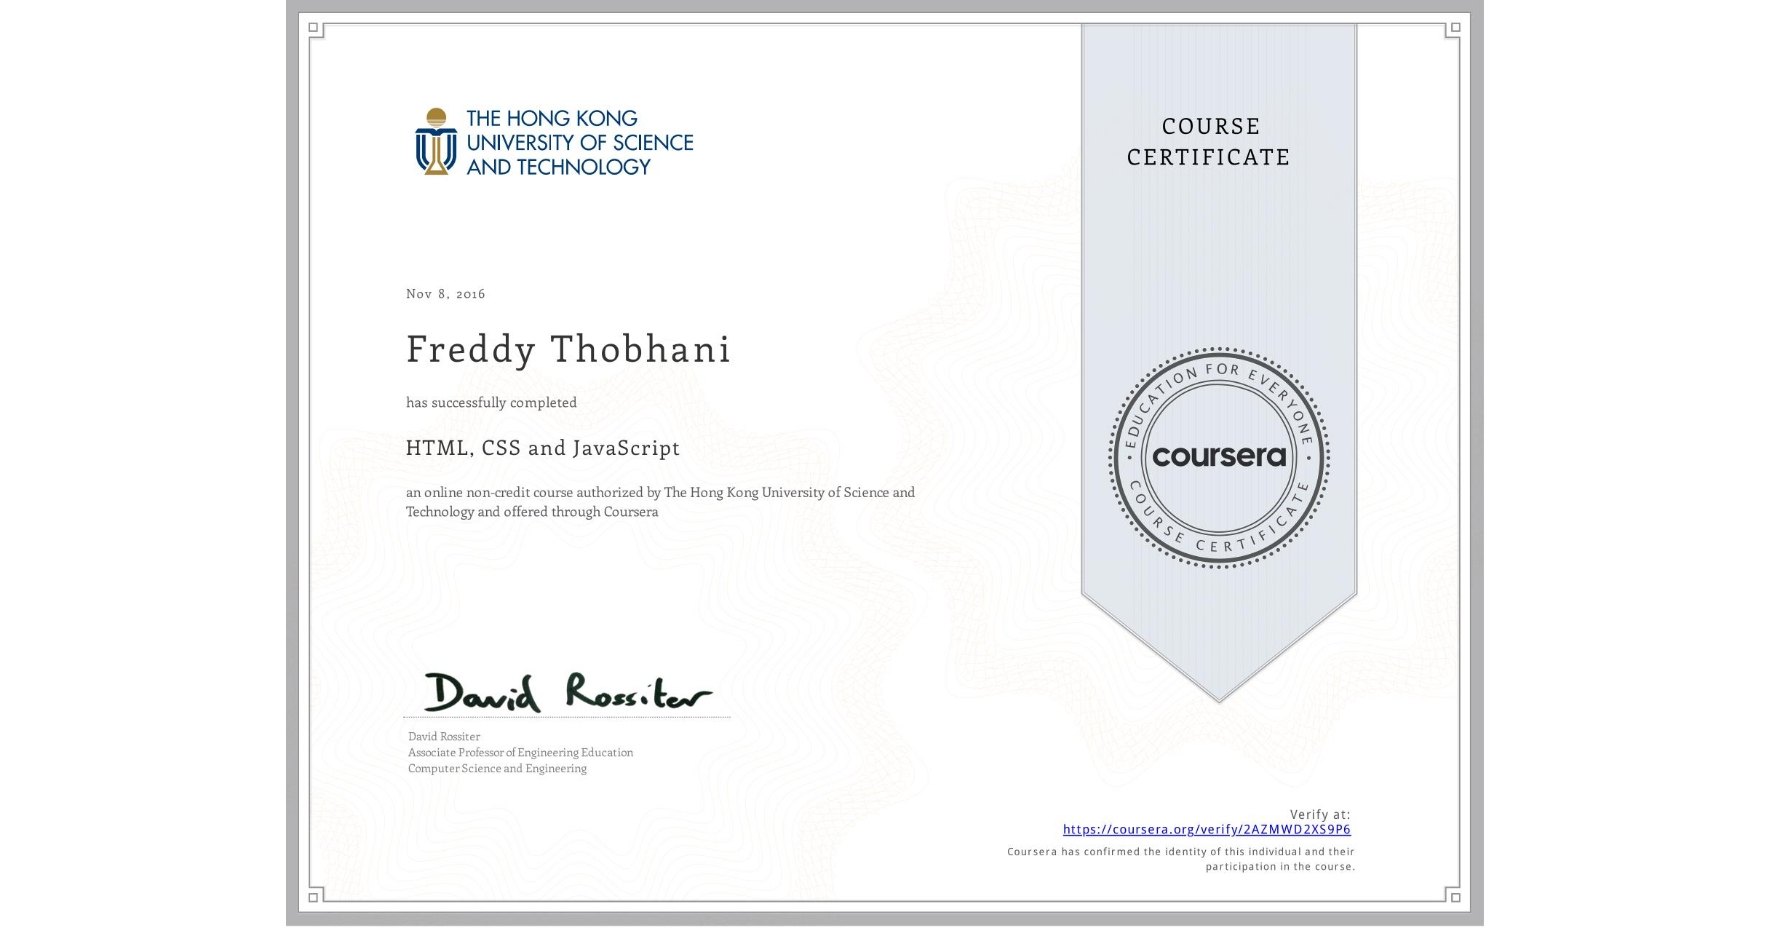 View certificate for Freddy Thobhani, HTML, CSS and JavaScript, an online non-credit course authorized by The Hong Kong University of Science and Technology and offered through Coursera